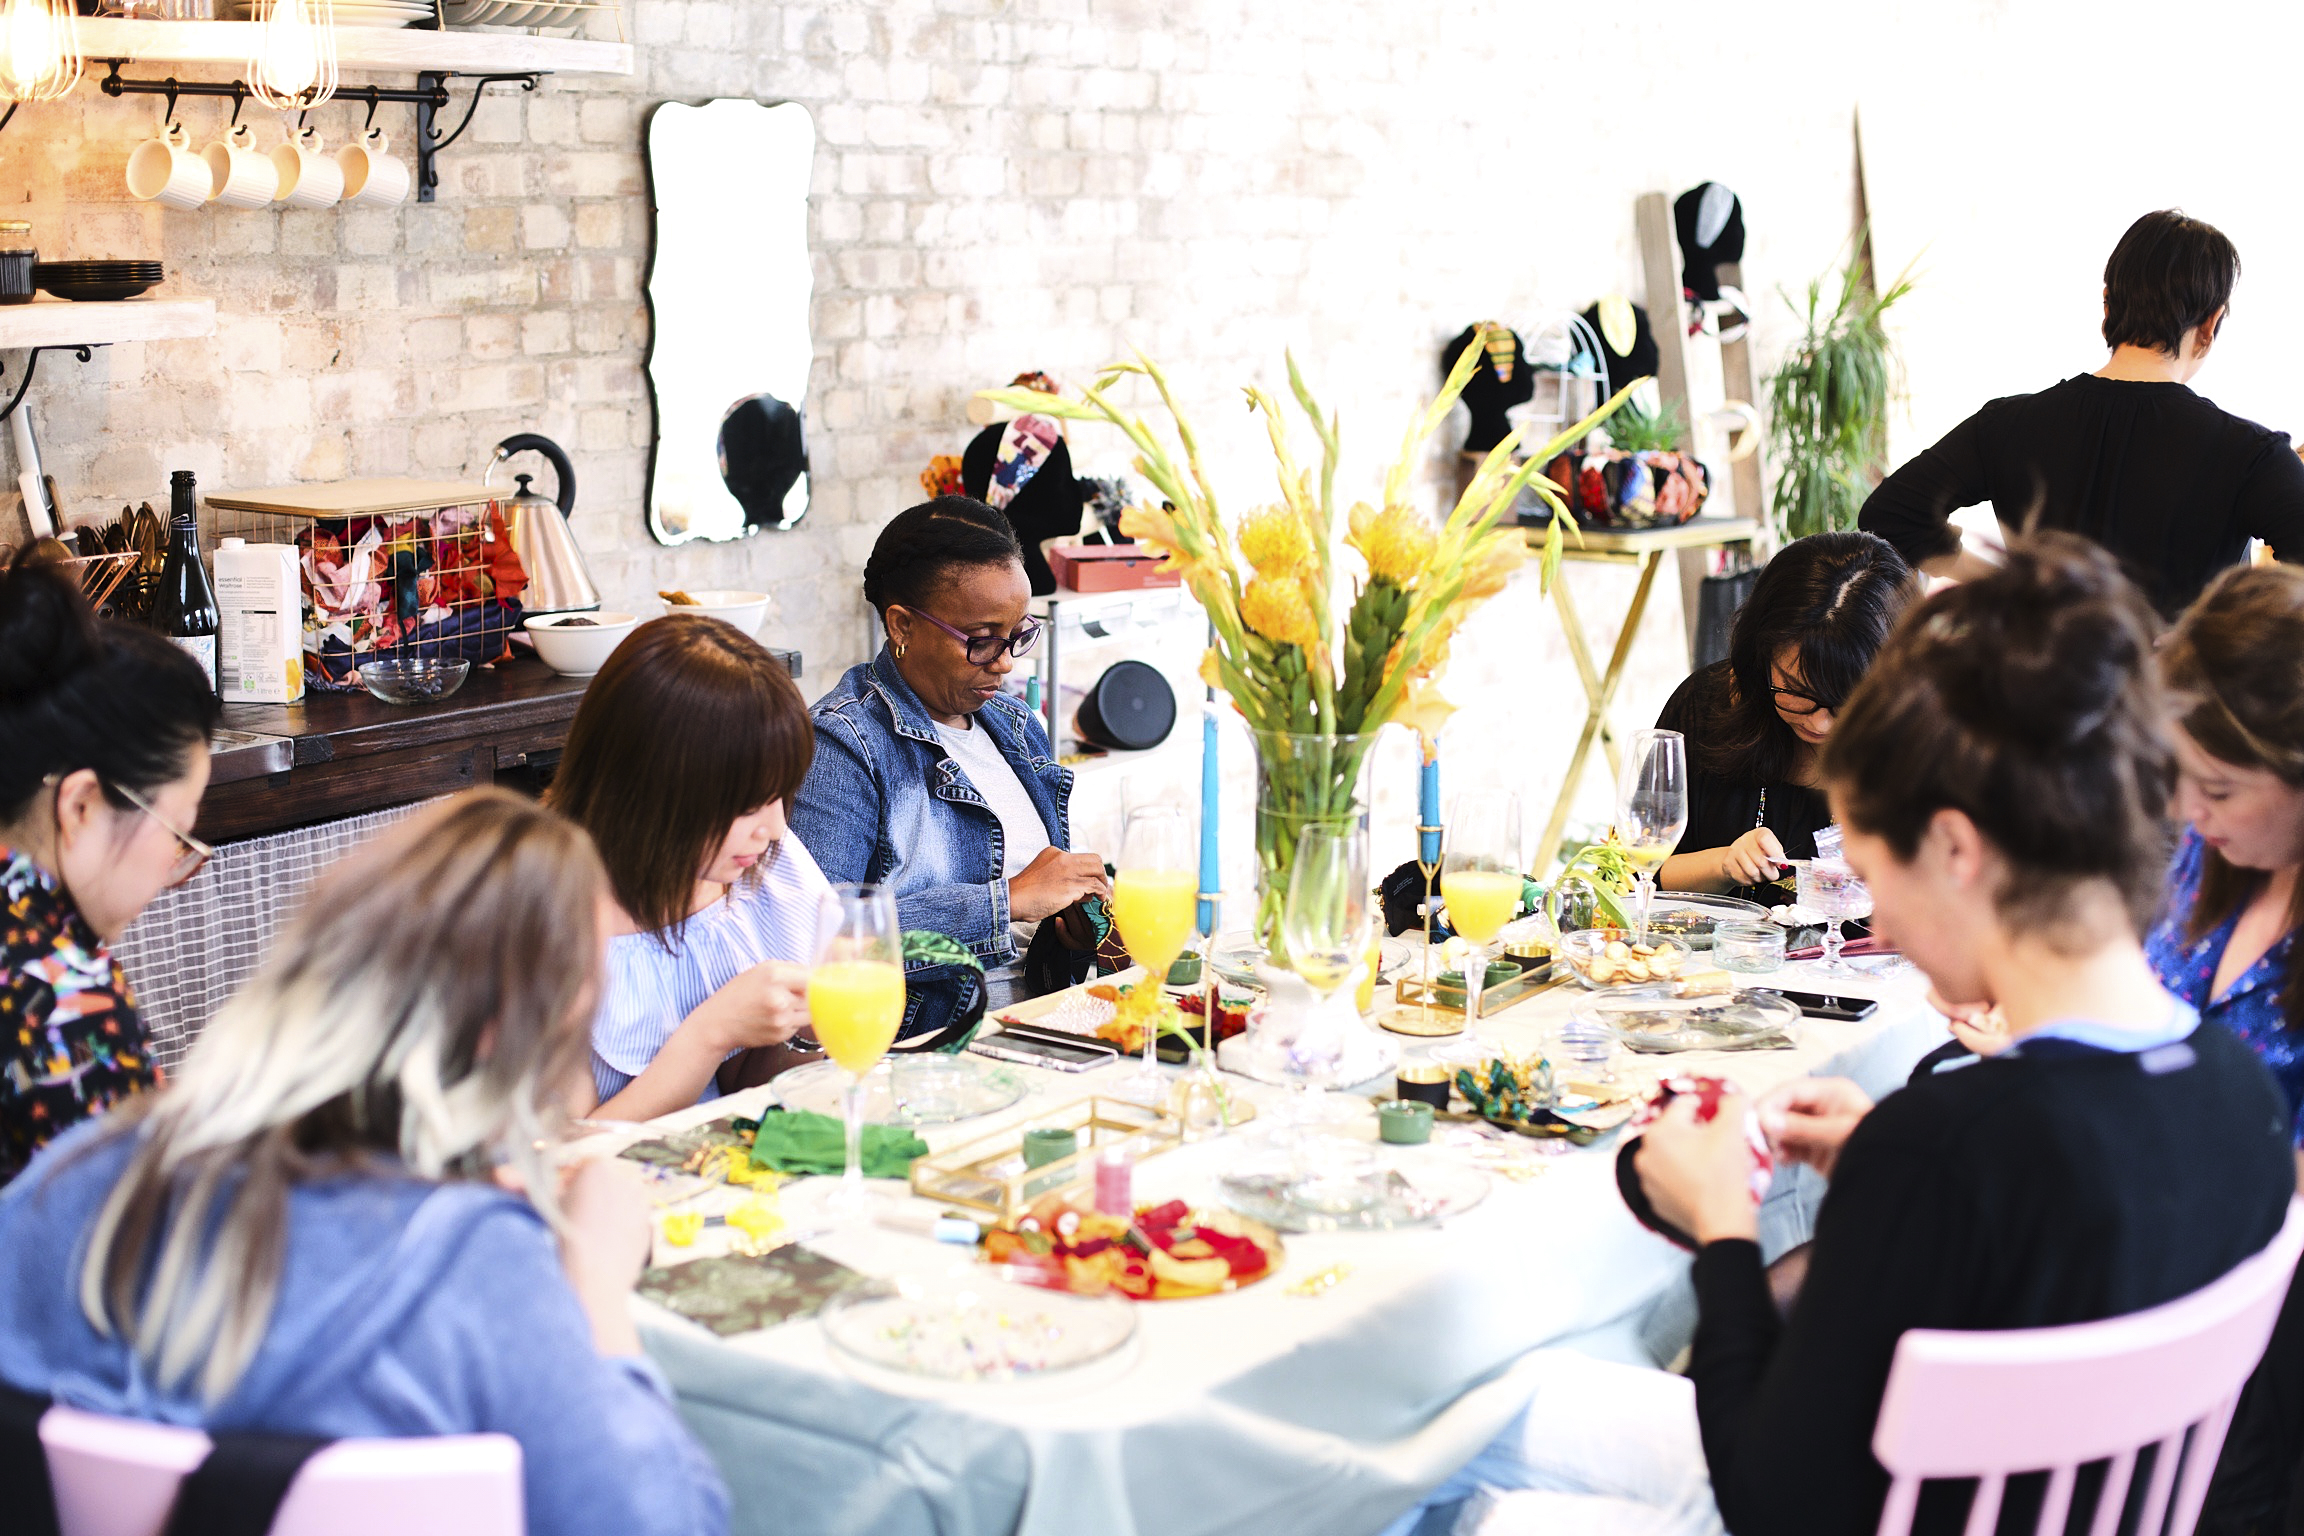 DIY Headband Workshop by Stepthirtyone - crafts in London